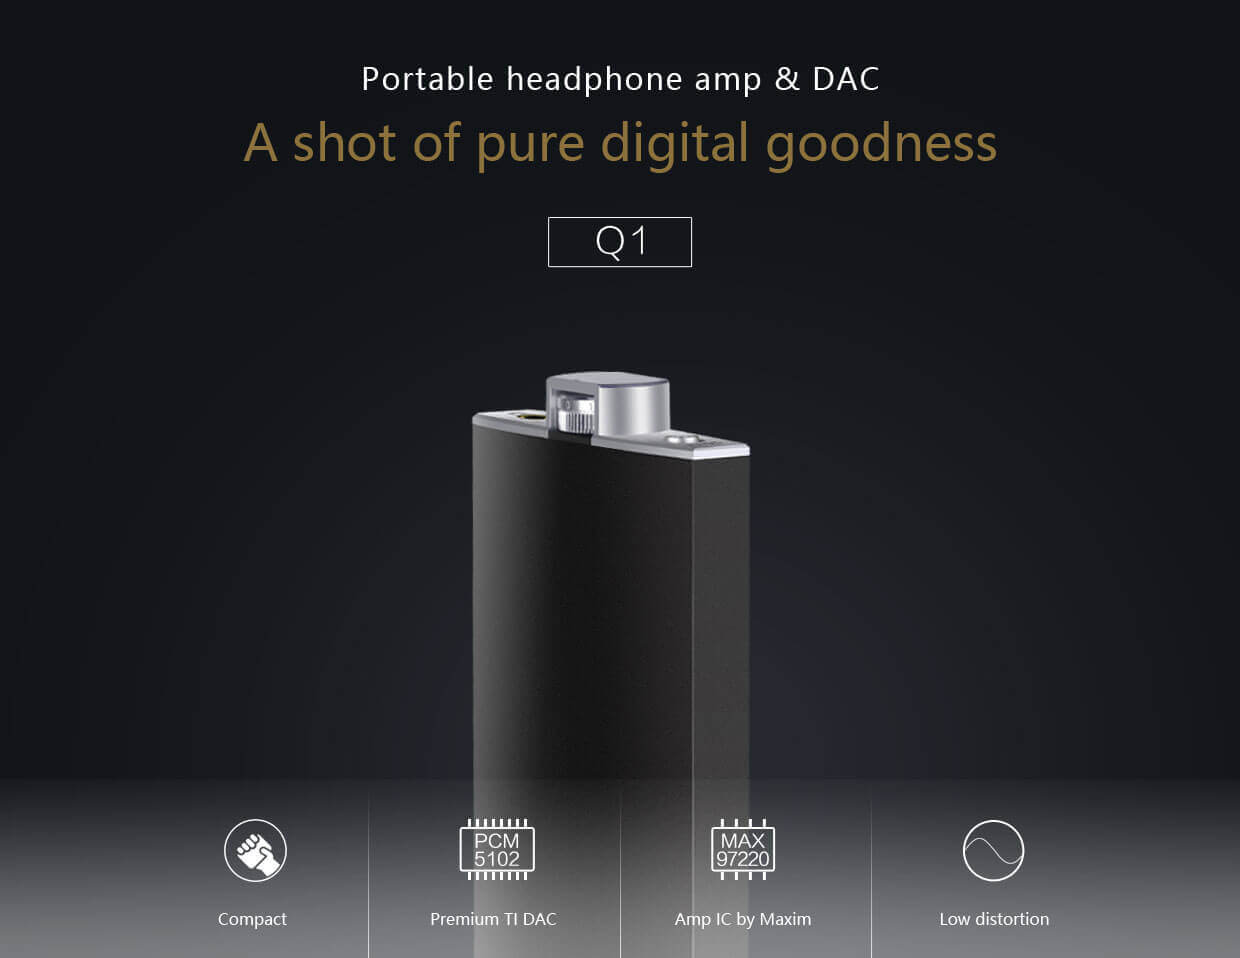 Fiio Q1 Portable headphone amp